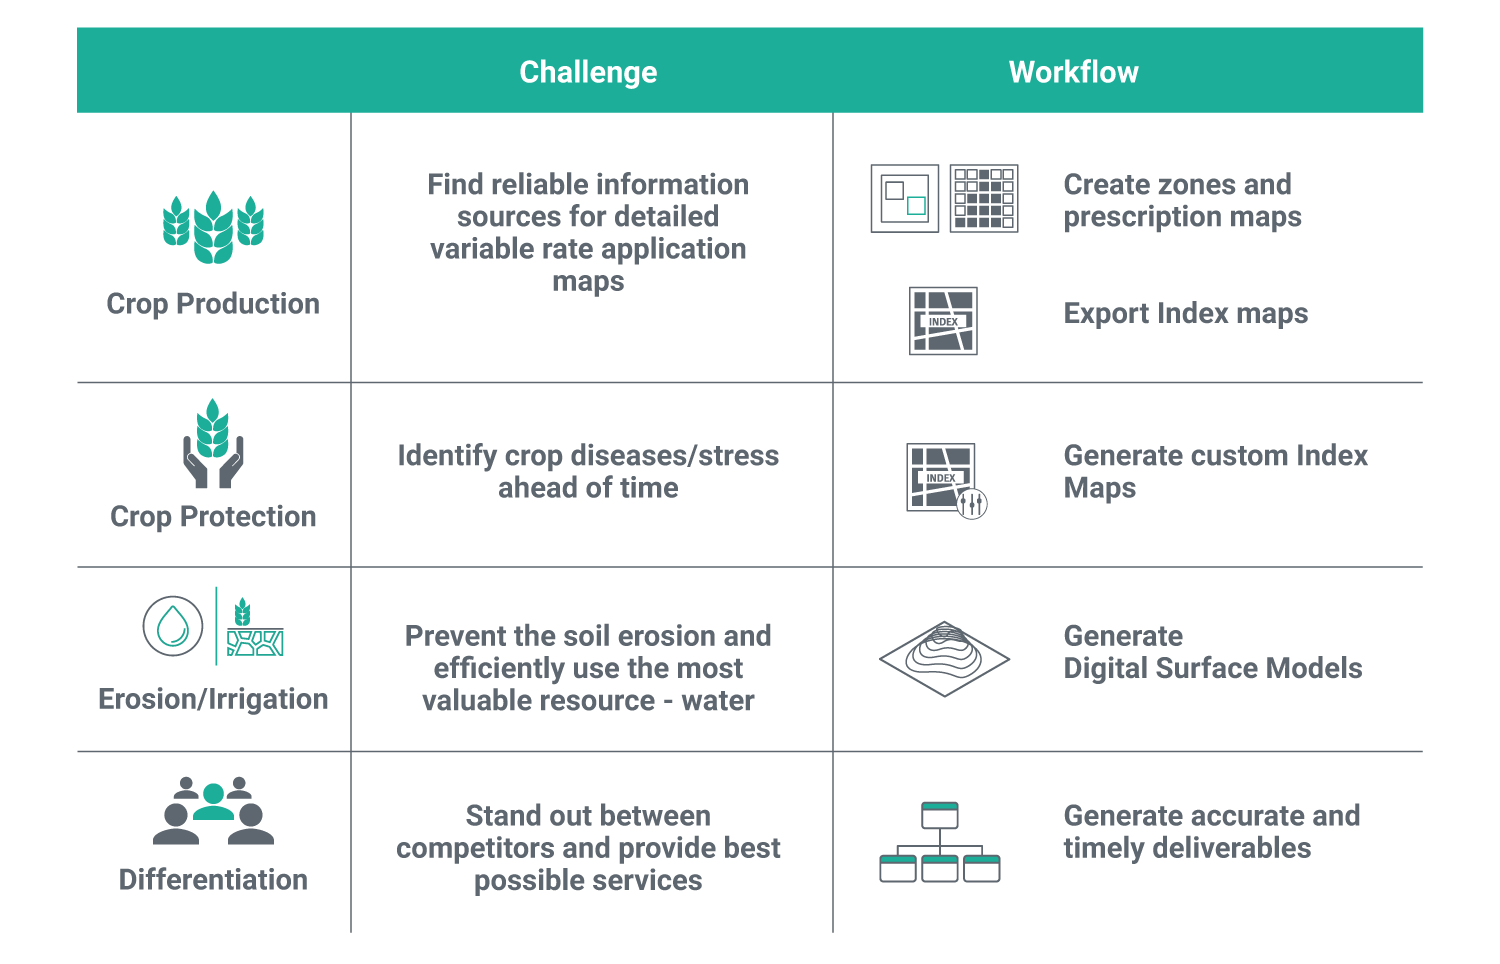 Infographic showing common agricultrial challenges and the workflows to overcome them